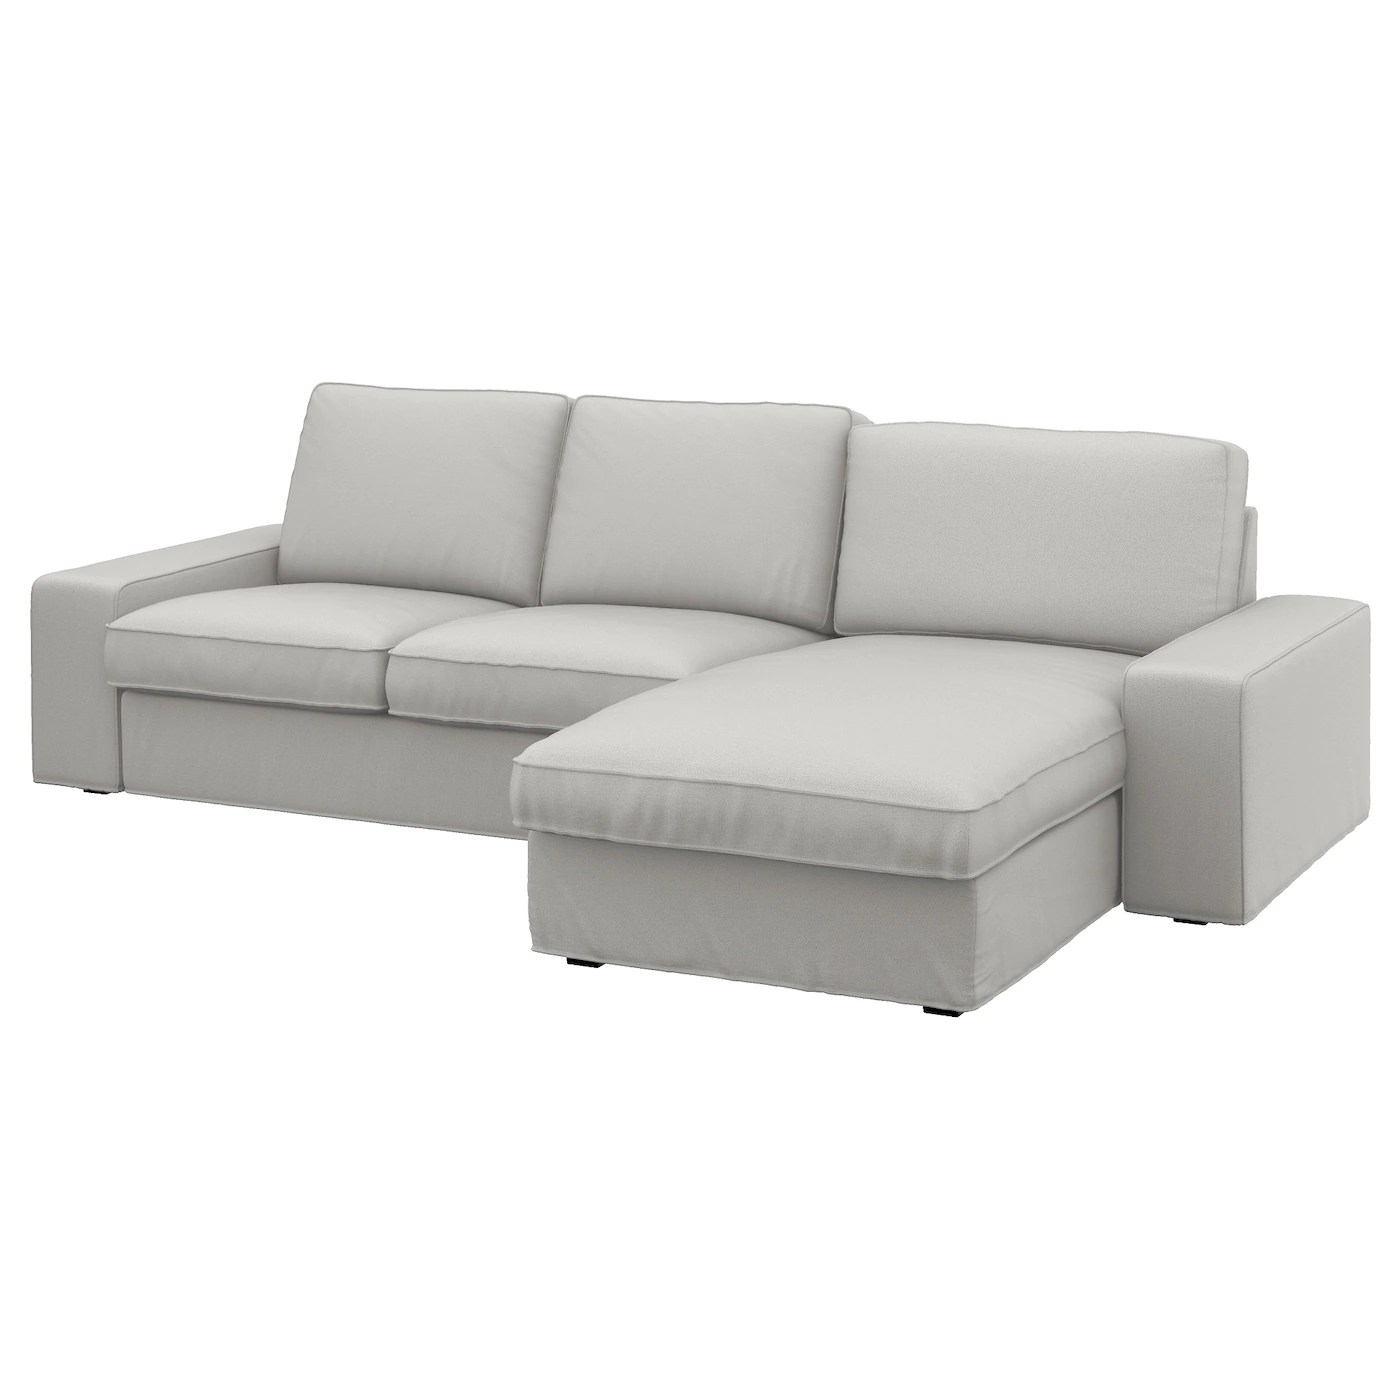 Kivik With Chaise Longue Ramna Light Grey 3 Seat Sofa Ikea